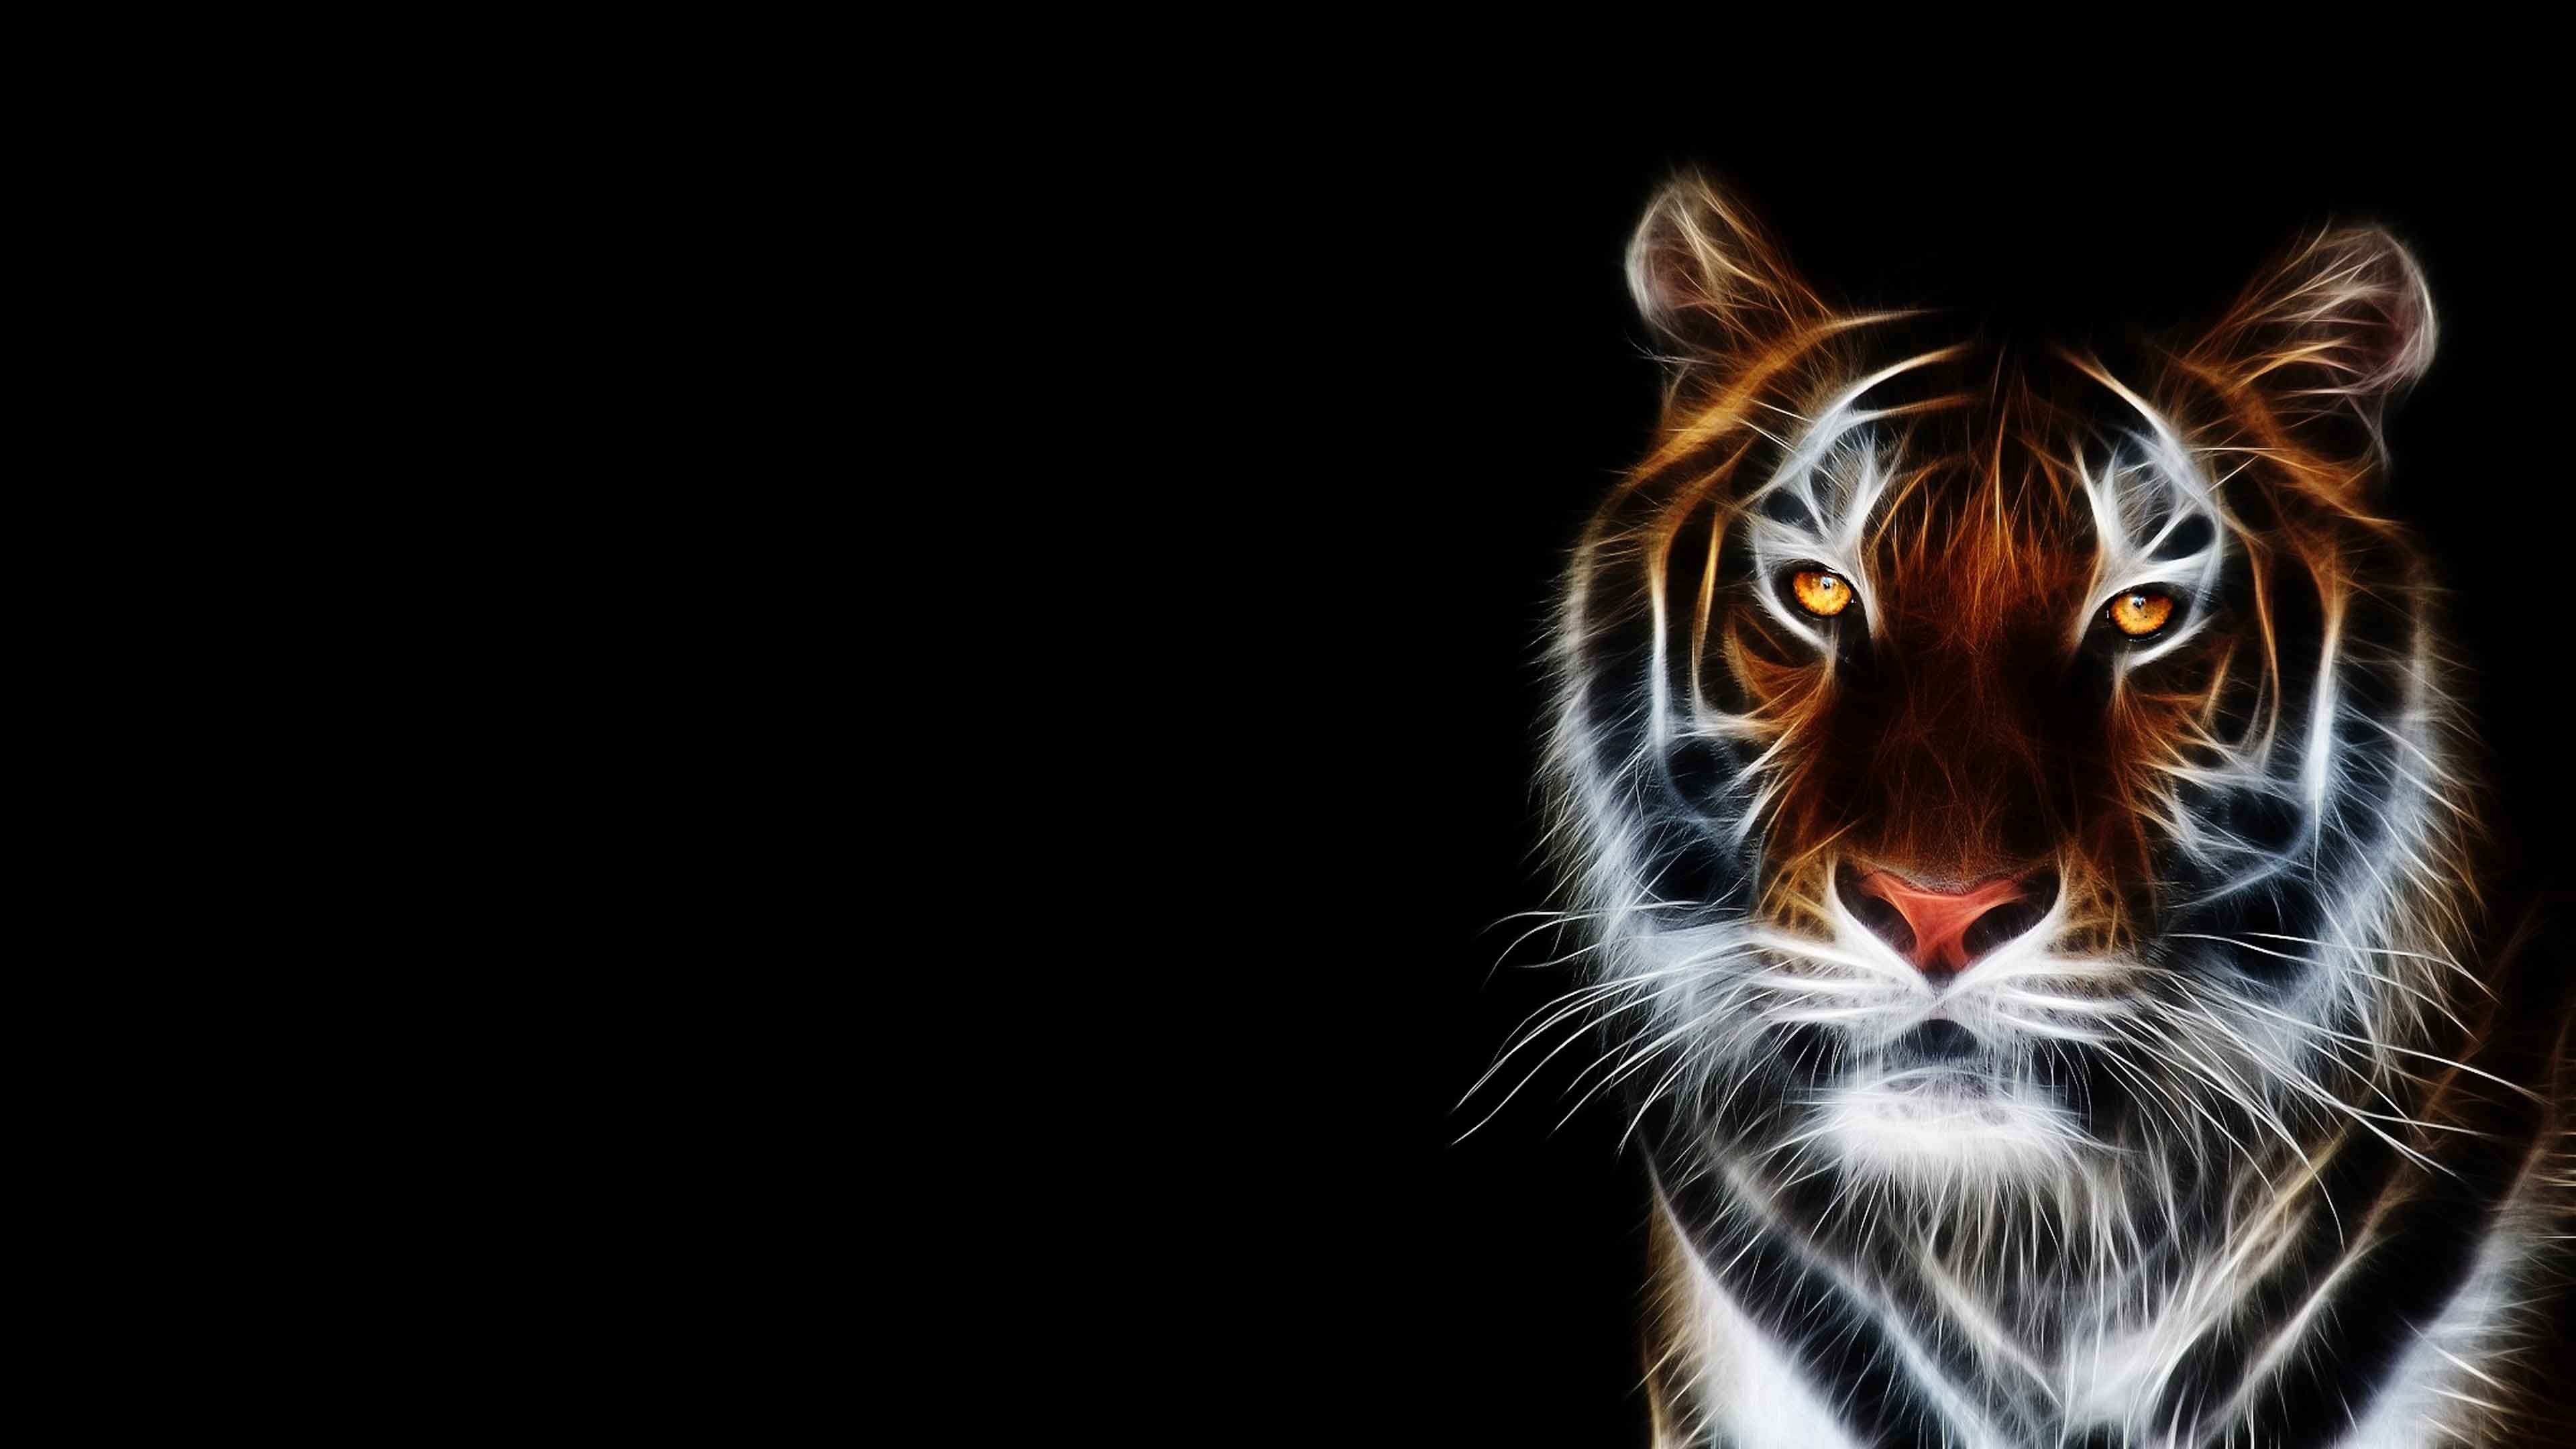 3d Tiger Wallpaper Desktop Animal Wallpaper Tiger Wallpaper